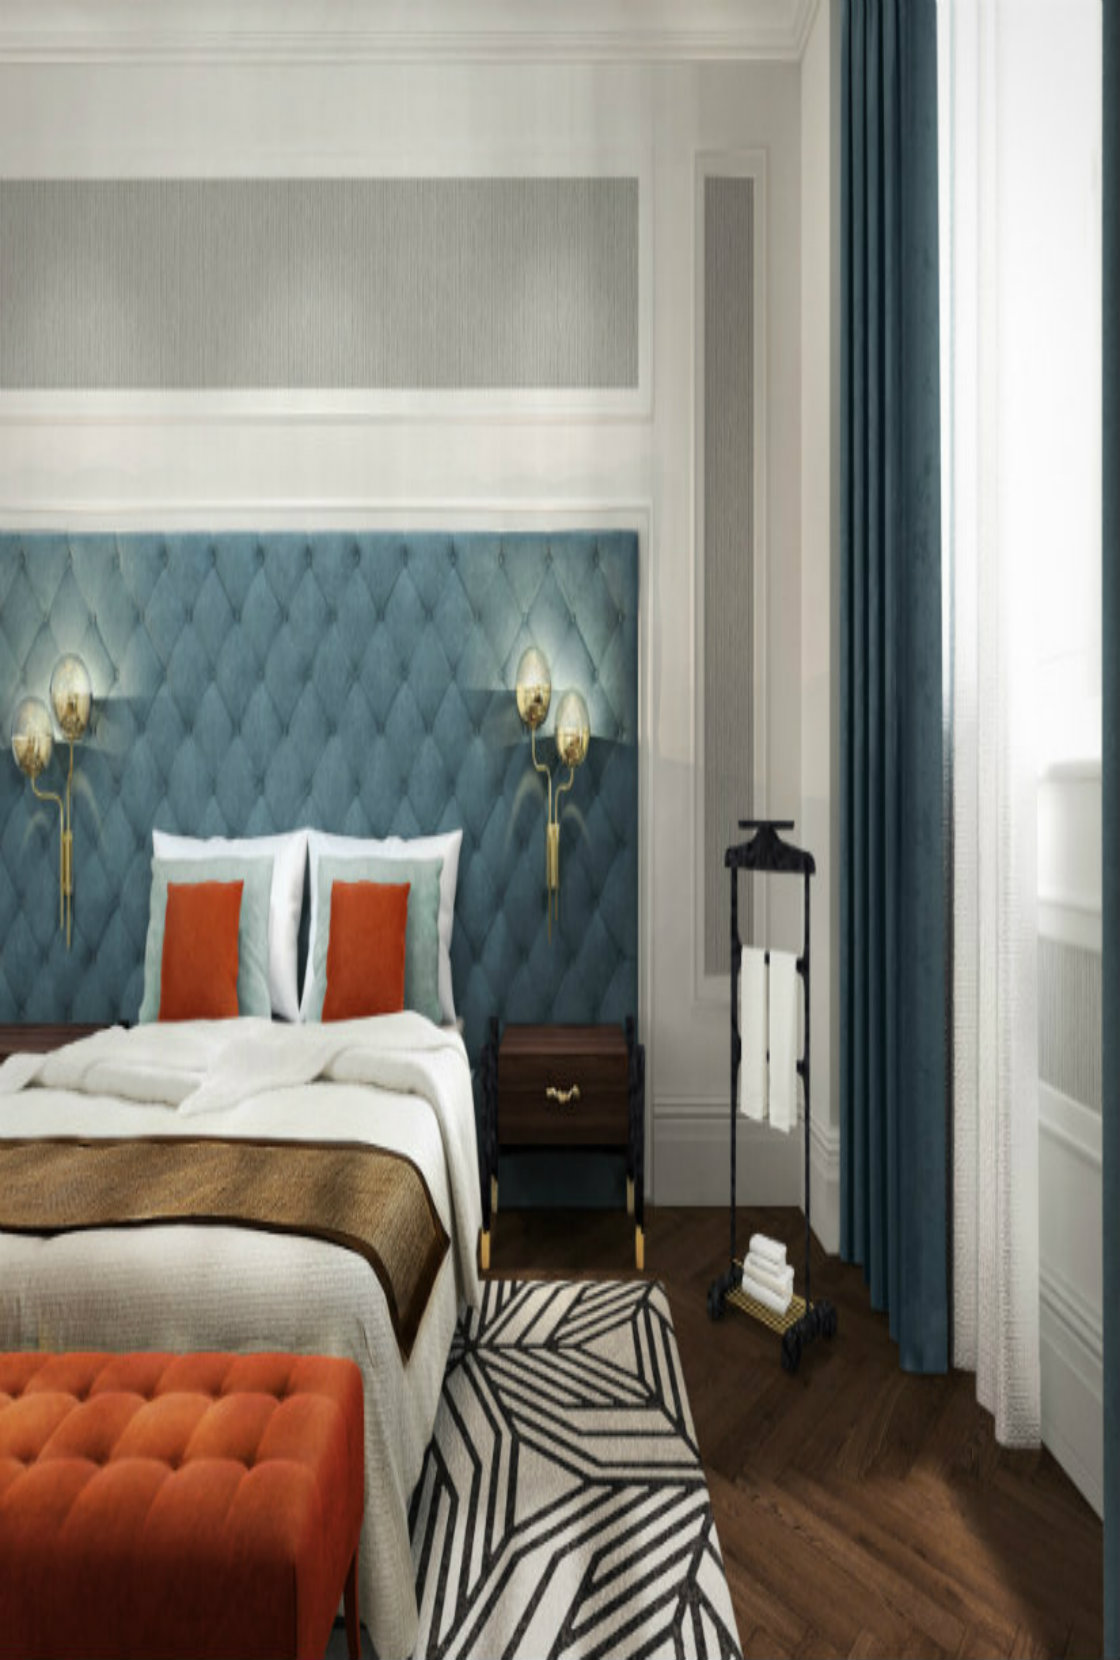 15 hotel master bedrooms by famous interior designers inspirations and ideas